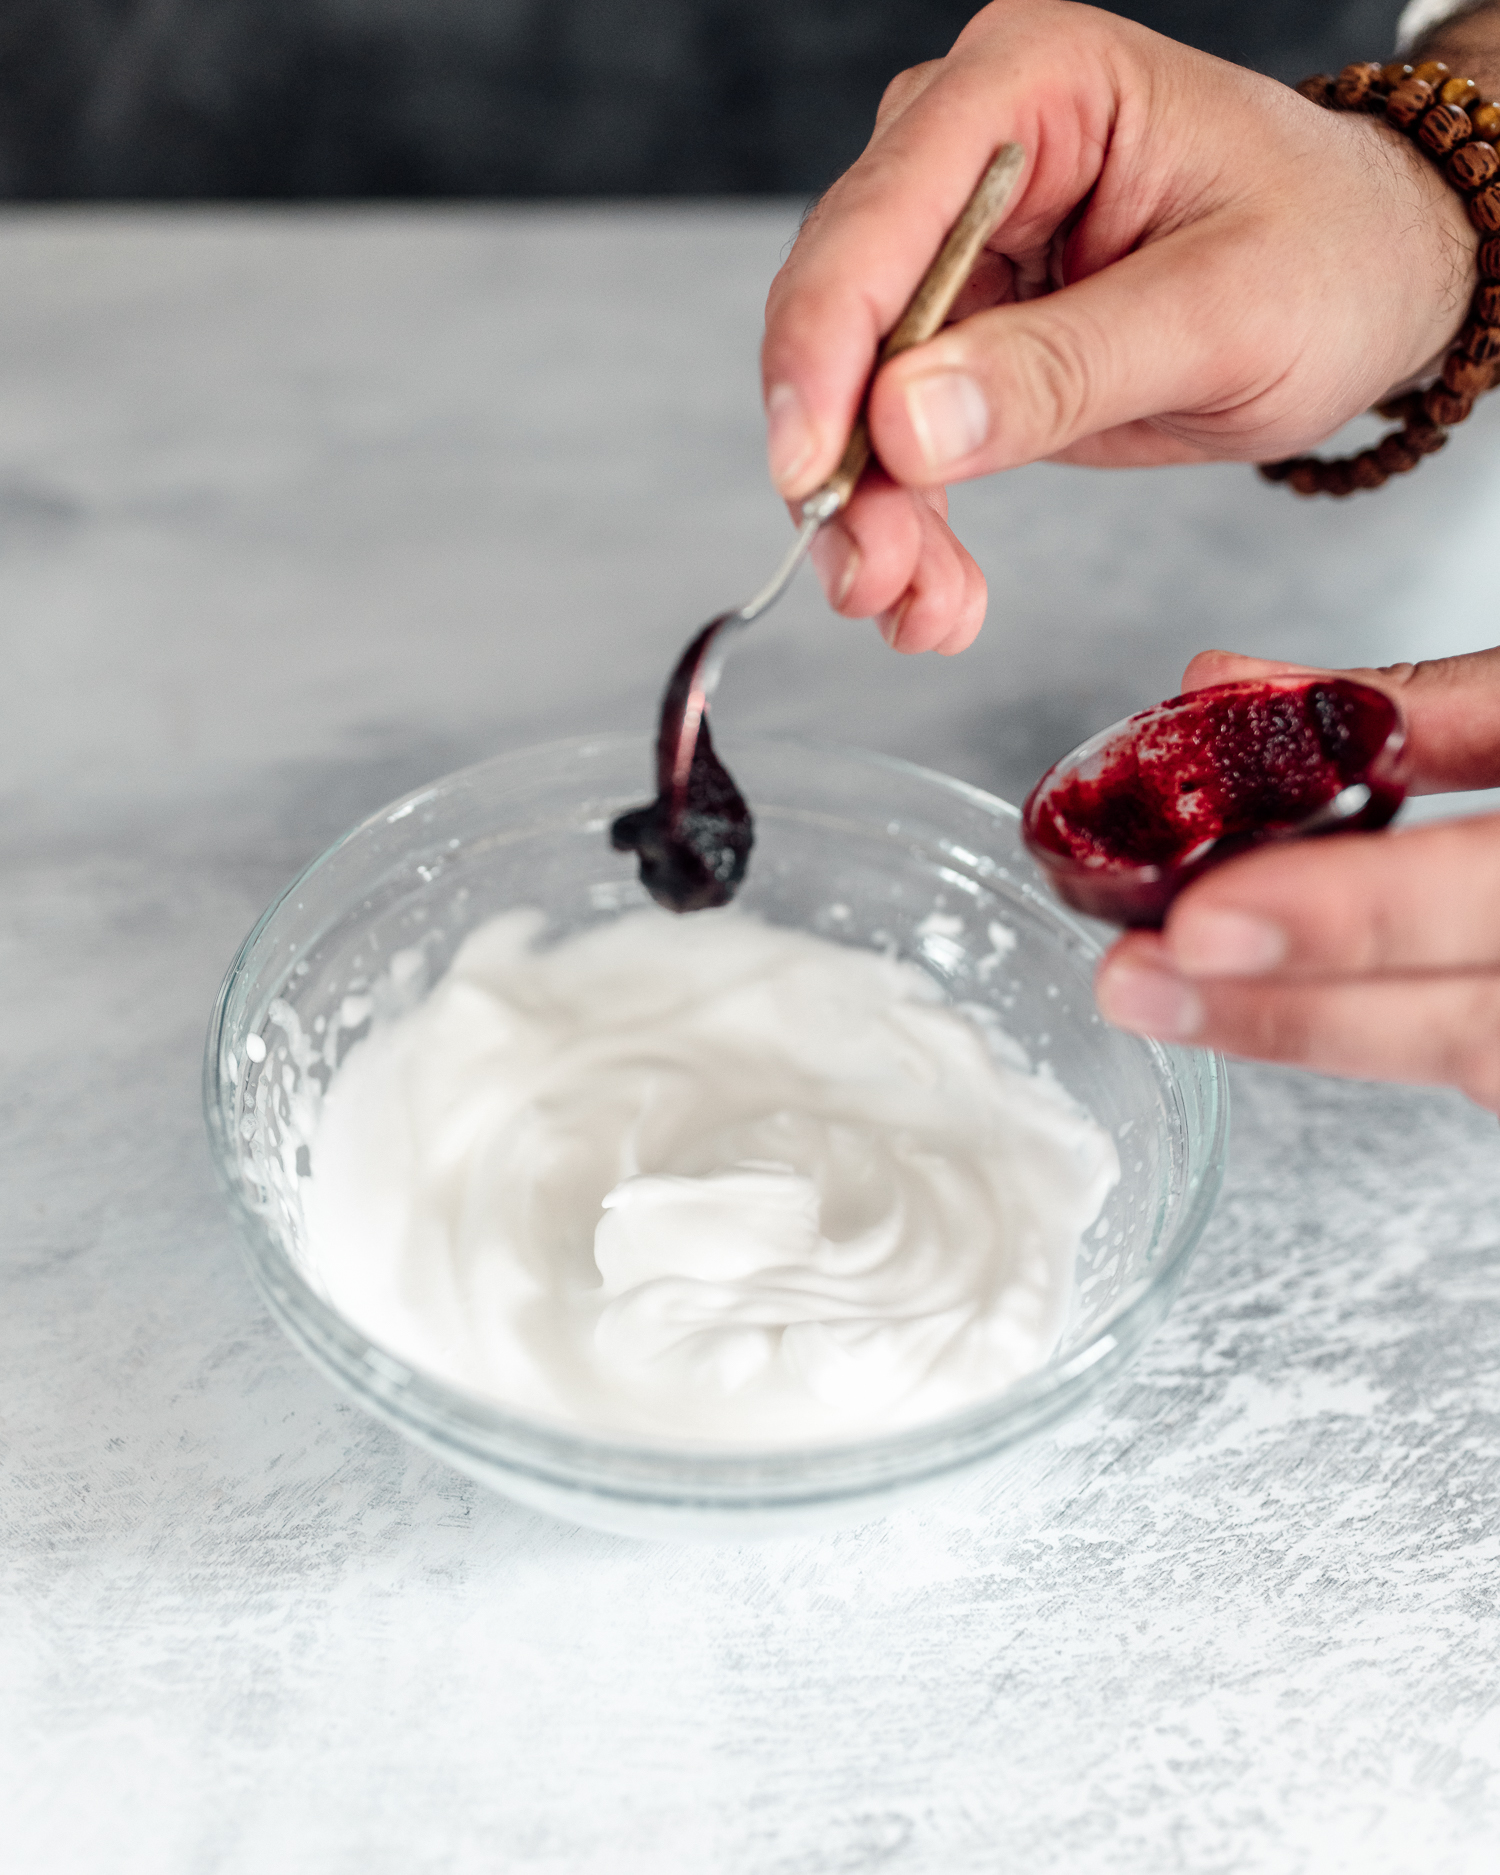 Mix the beetroot paste with the whipped aquafaba.